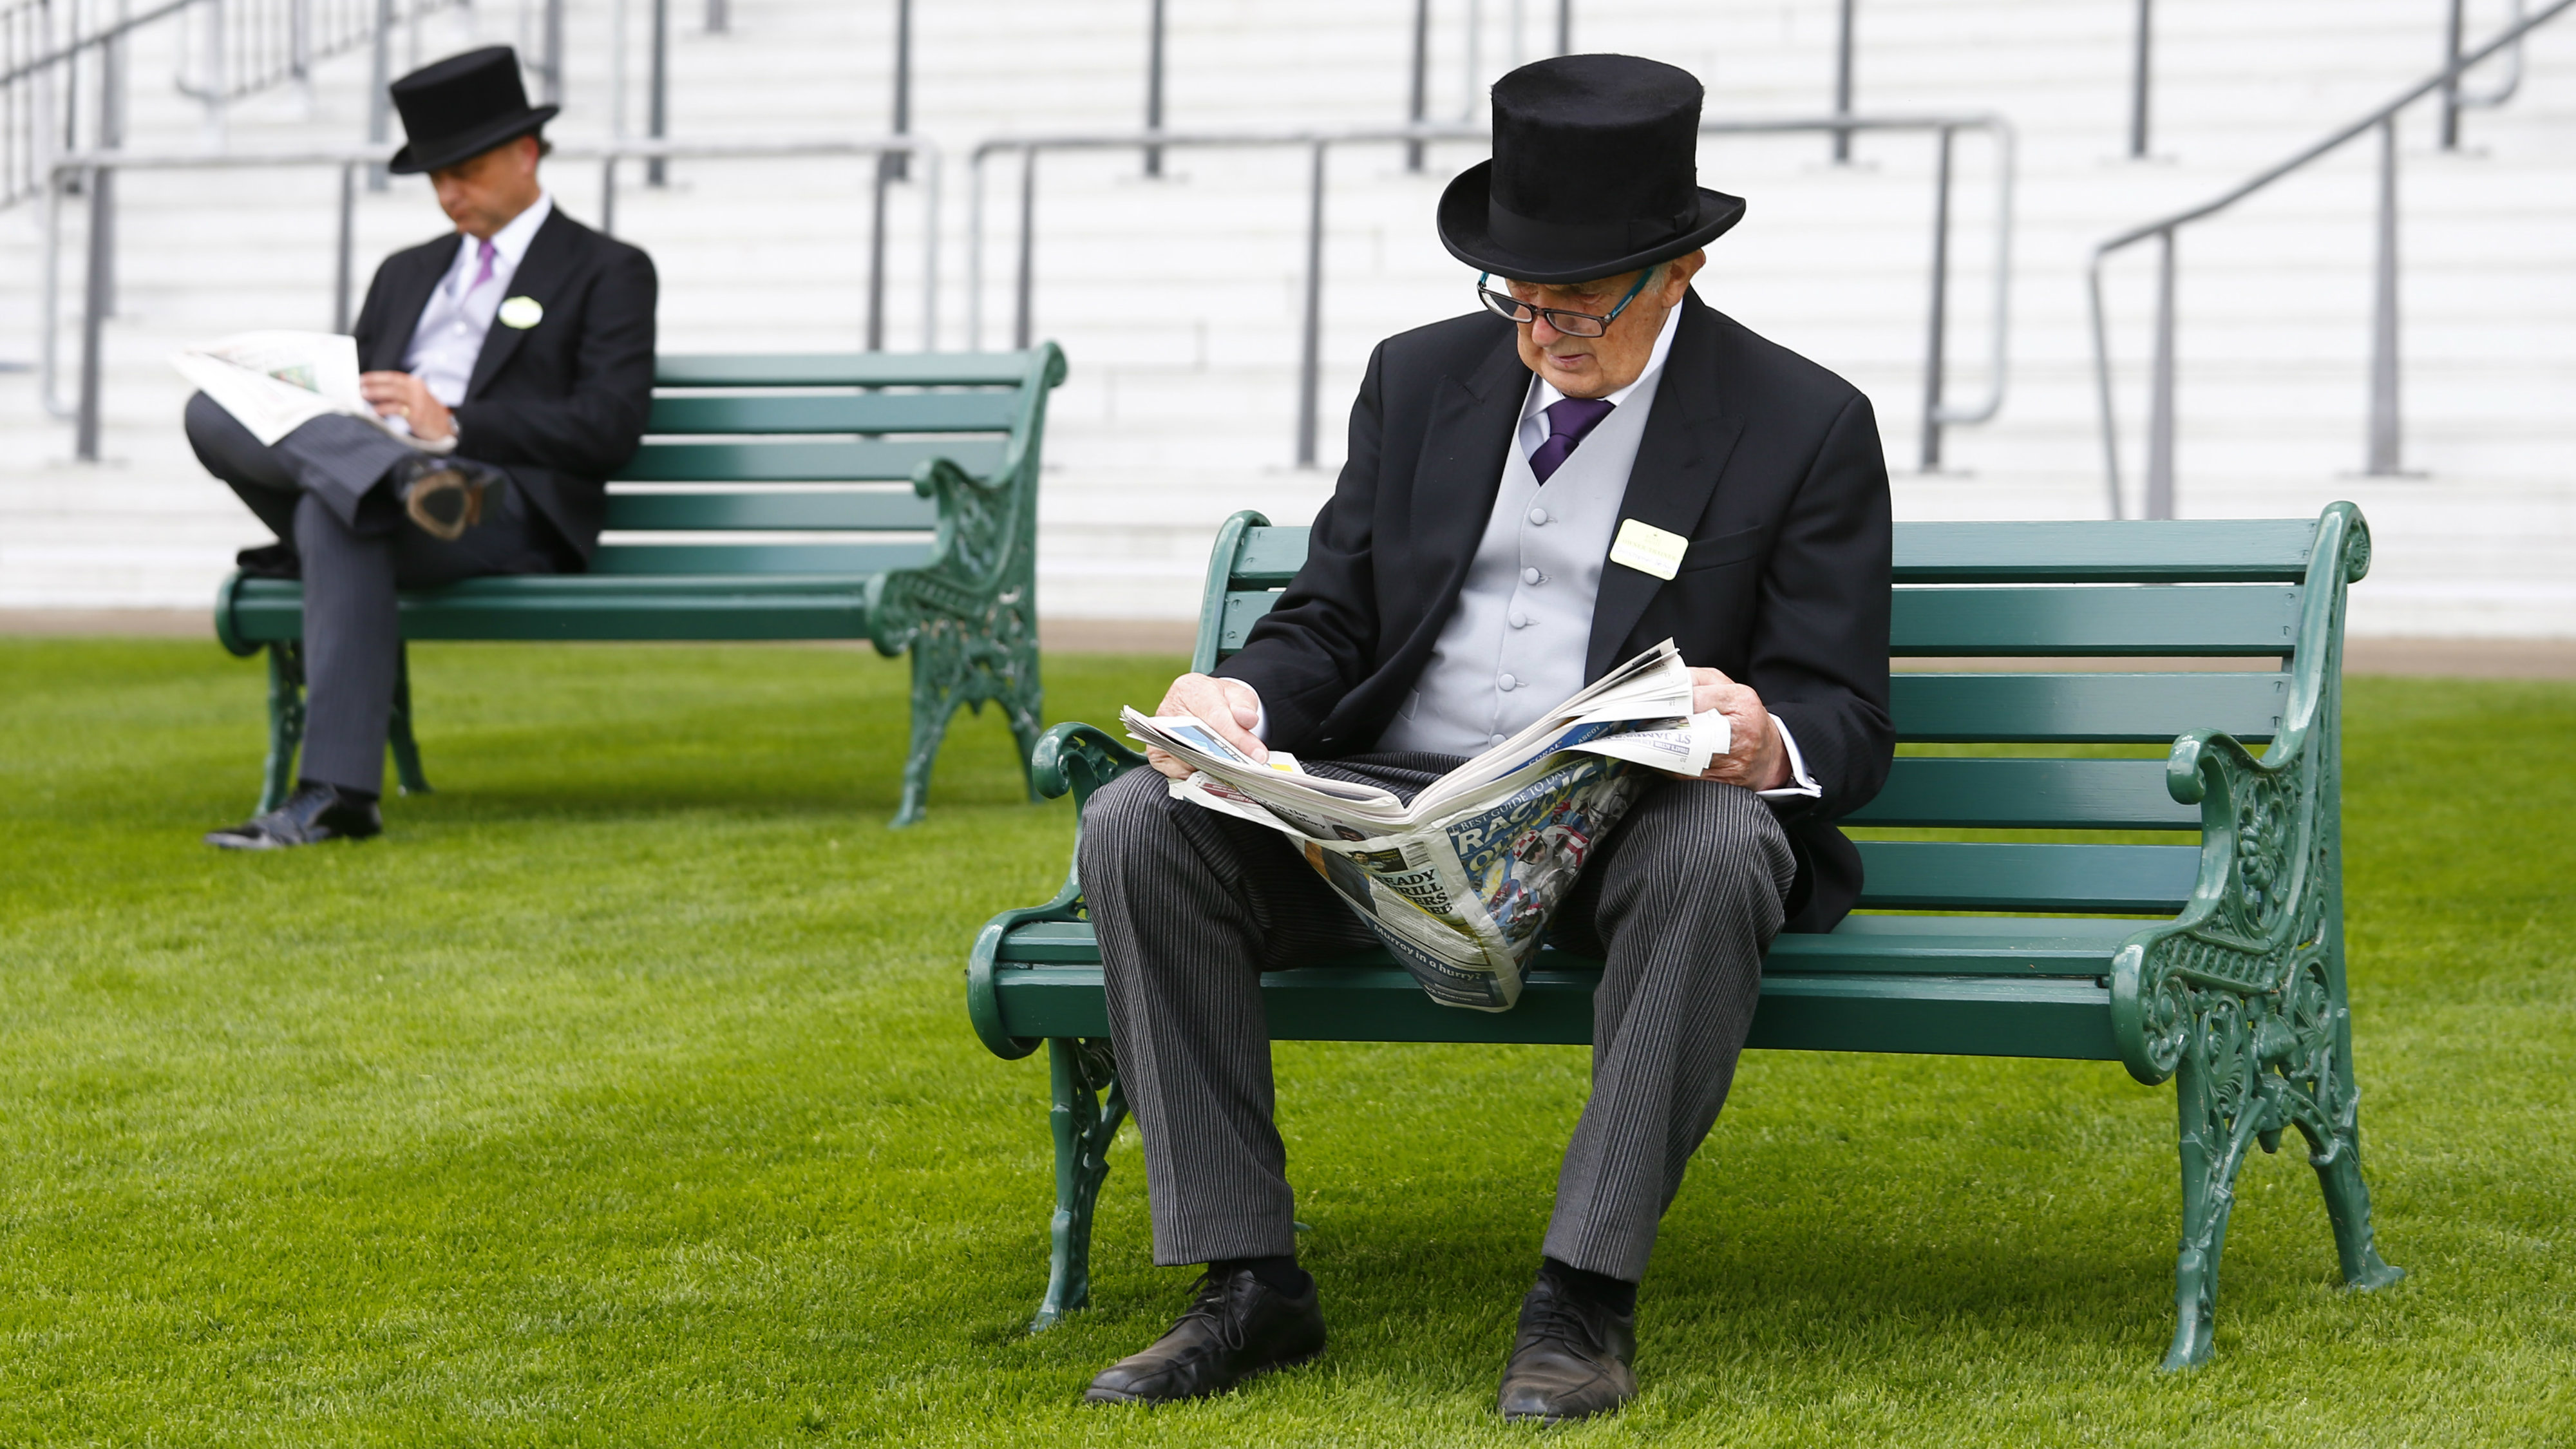 Horse Racing - Royal Ascot - Ascot Racecourse - 16/6/15 A racegoer reads the newspaper Reuters / Eddie Keogh Livepic